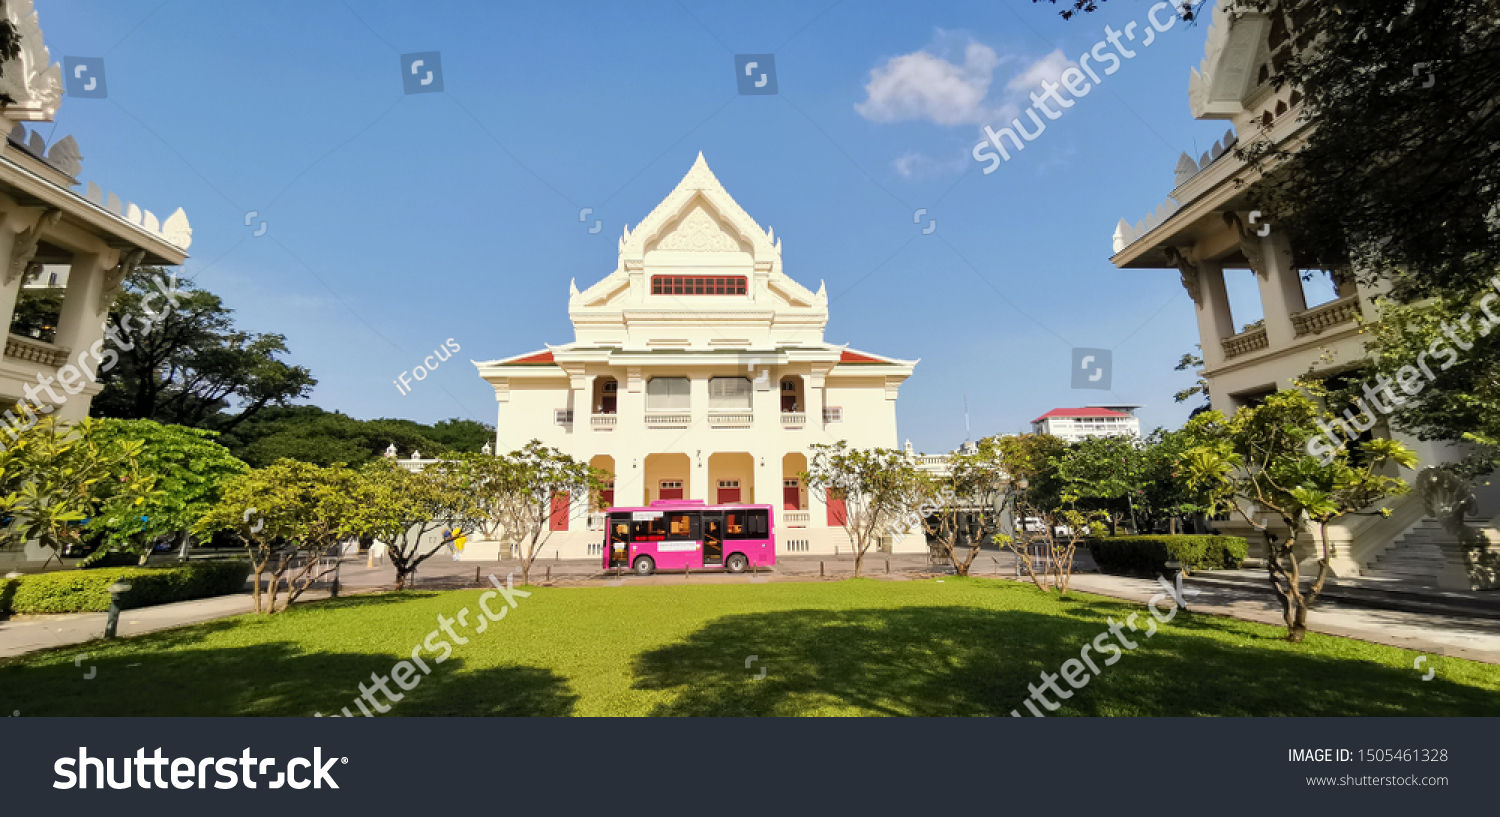 BANGKOK, THAILAND - SEPTEMBER 16, 2019: A CU bus also called a Pop Bus passes in front of the Auditorium building at Chulalongkorn University on Spetember 16, 2019 in Bangkok, Thailand.